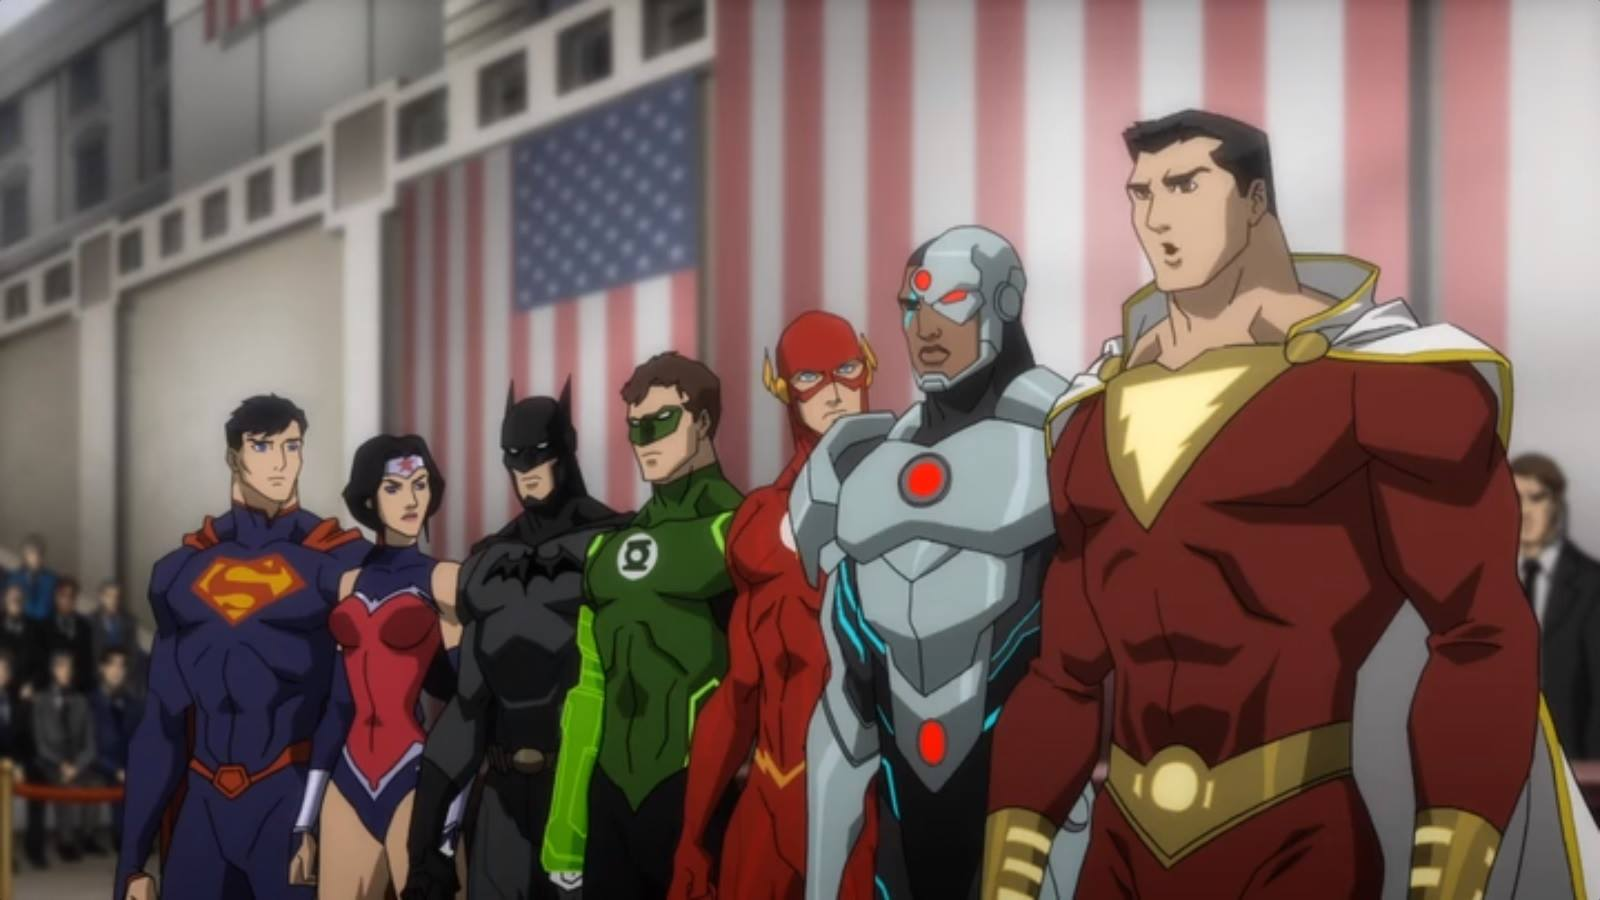 The New 52 Justice League line-up - Superman, Wonder Woman, Batman, Green Lantern, The Flash, Cyborg and Shazam in Justice League War (2014) 2